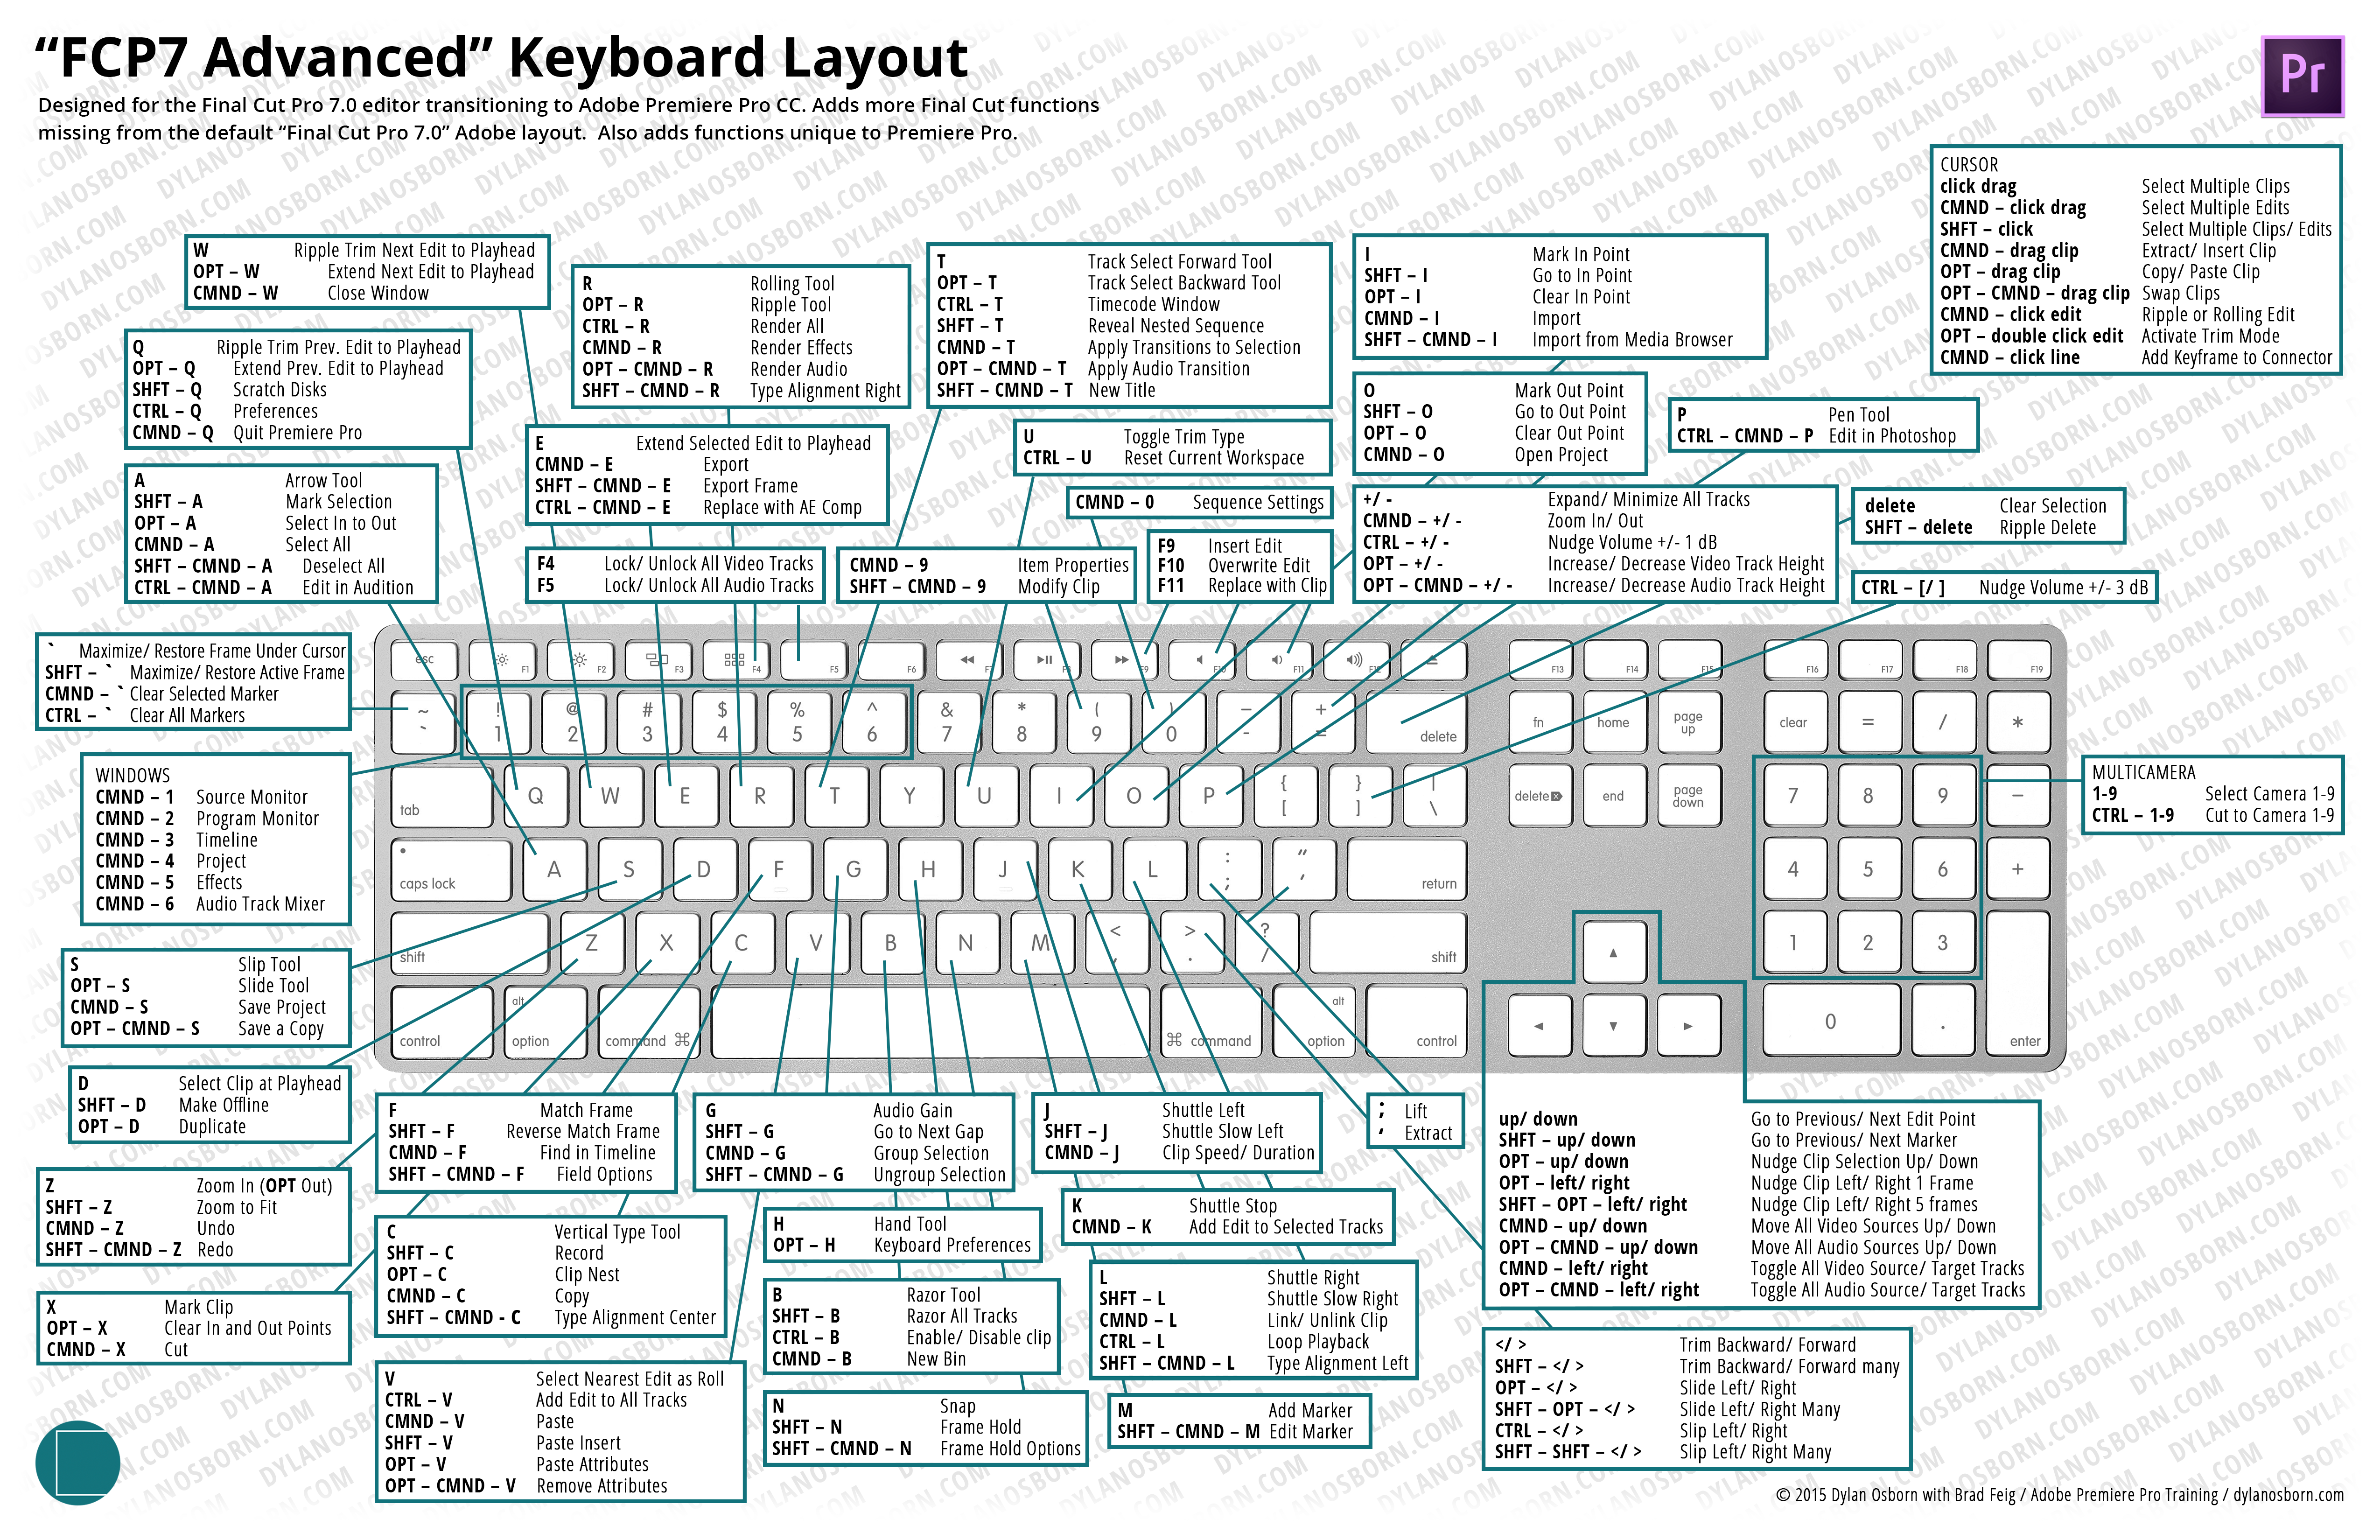 Manually copy keyboard shortcuts between computers – From FCP 7 to